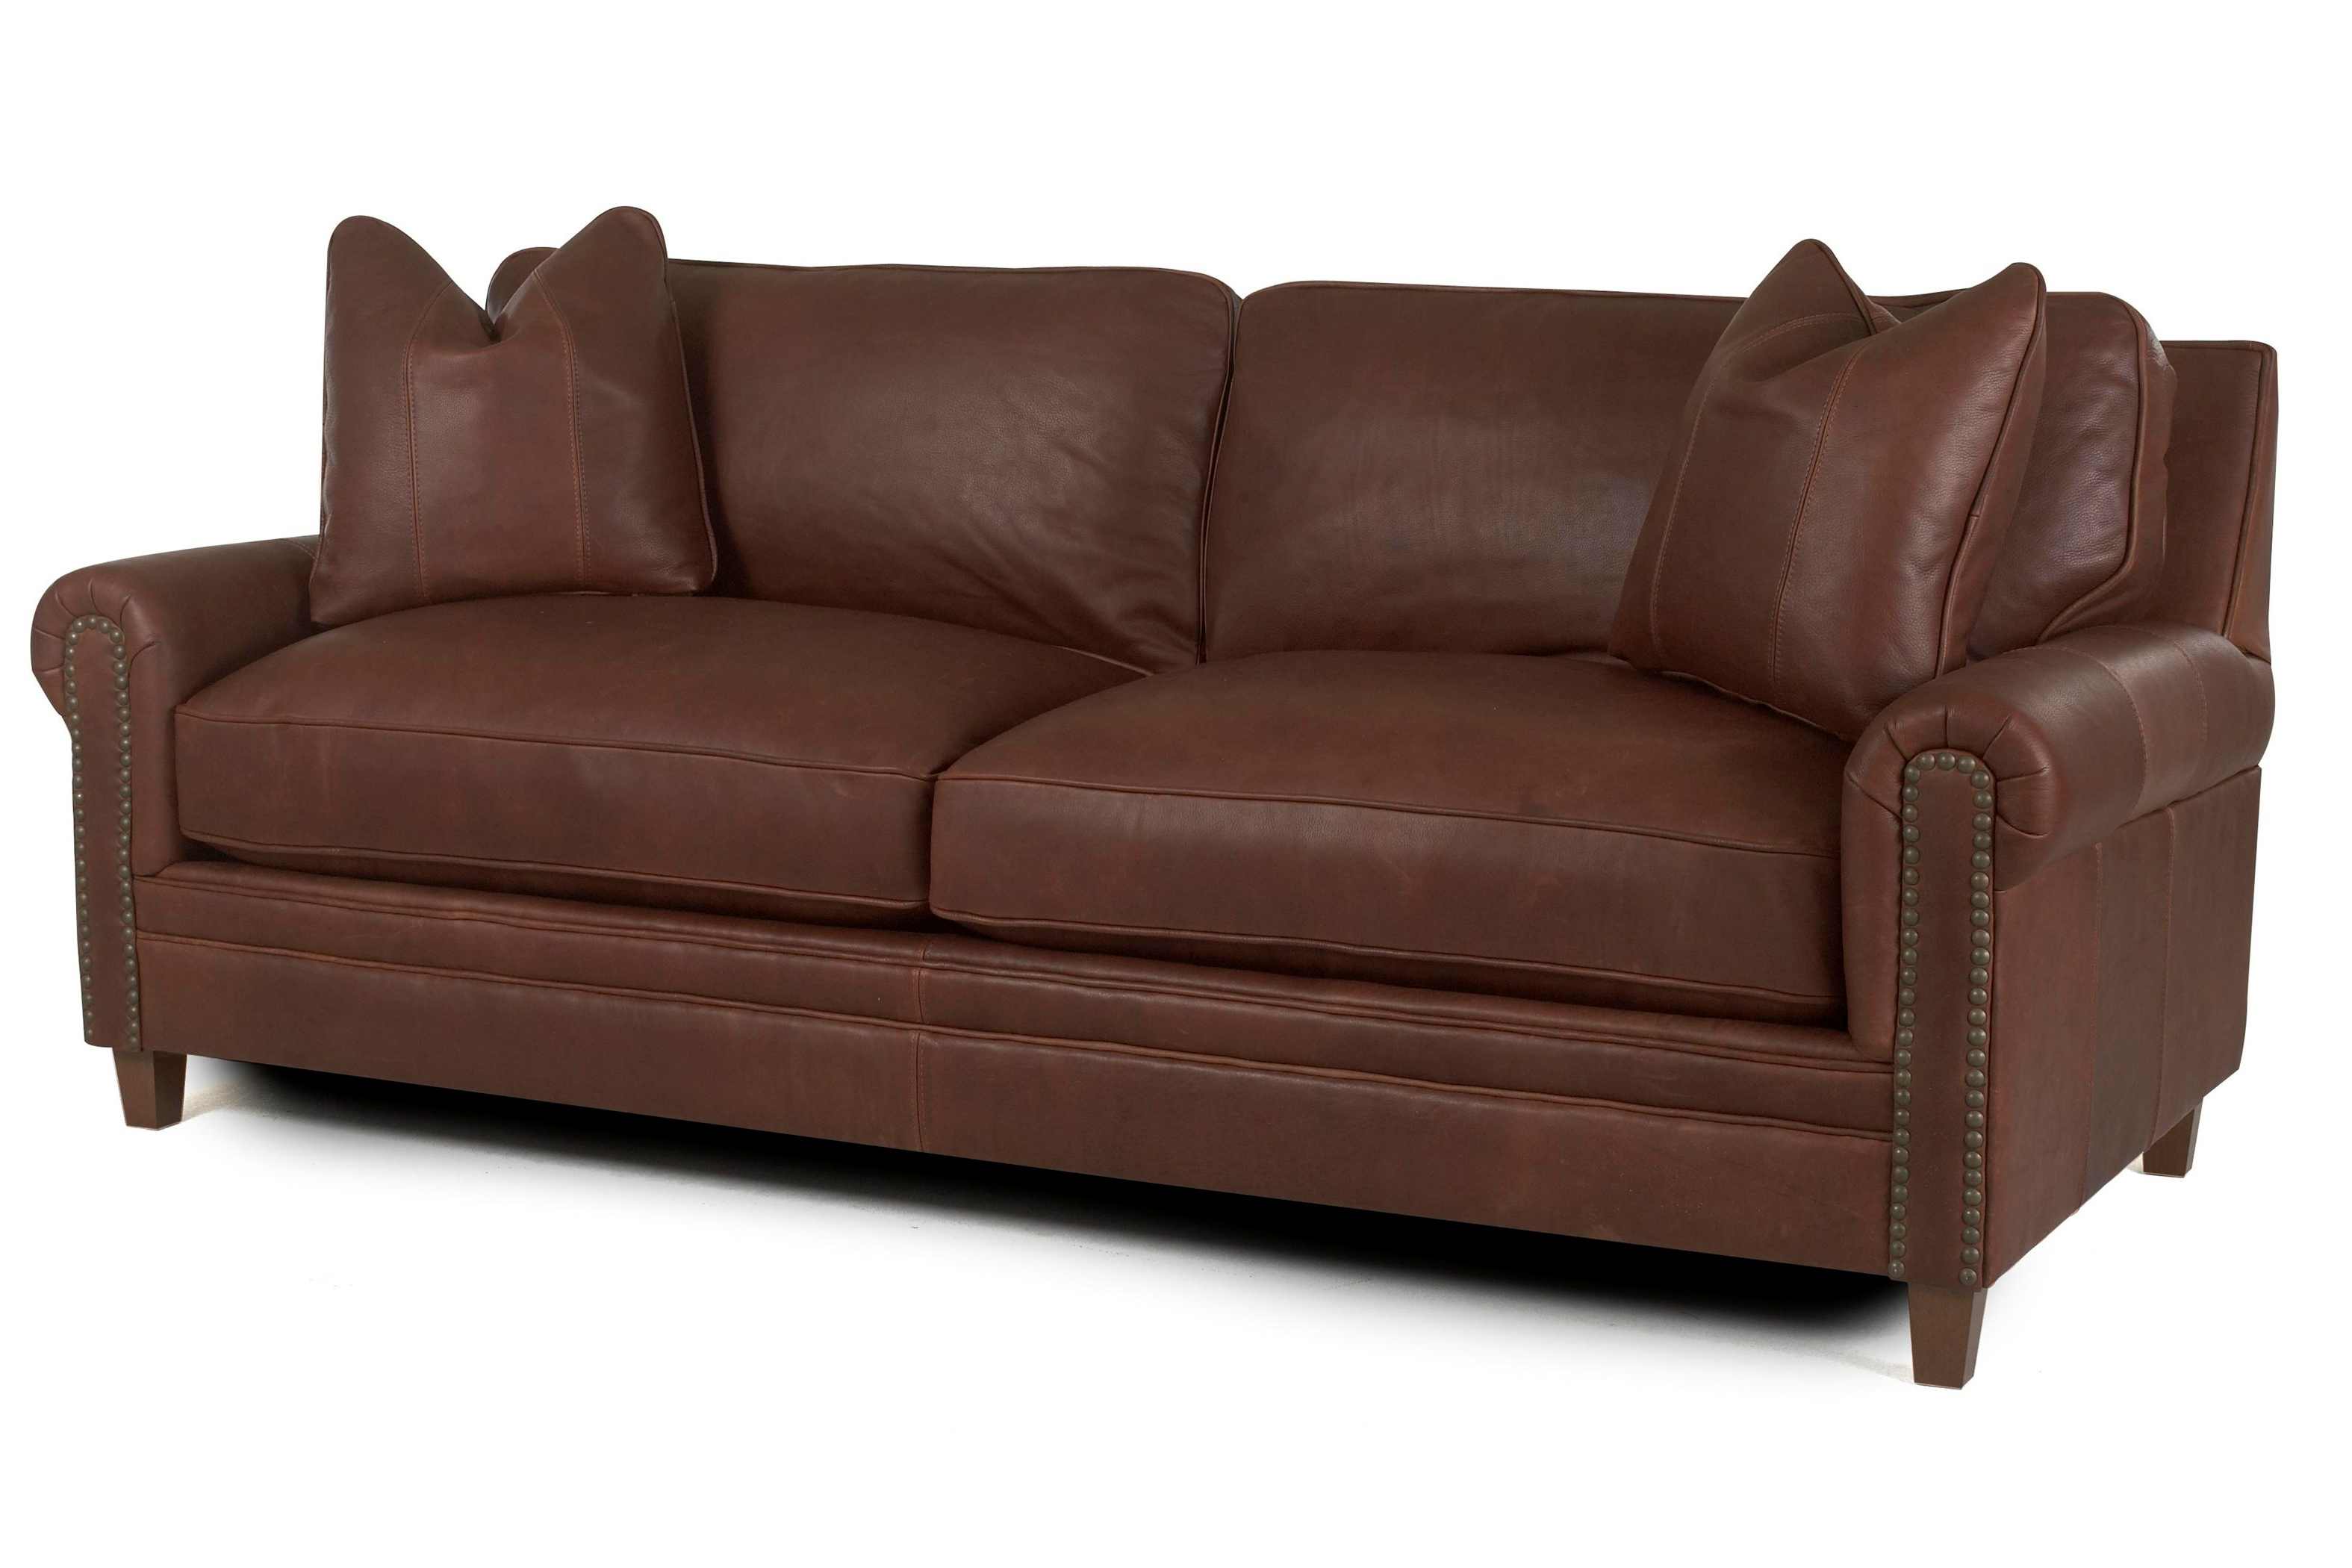 Furniture : The Best Sleeper Sectional Ikea Furnitures With Regard To Best And Newest Tuscaloosa Sectional Sofas (View 9 of 15)